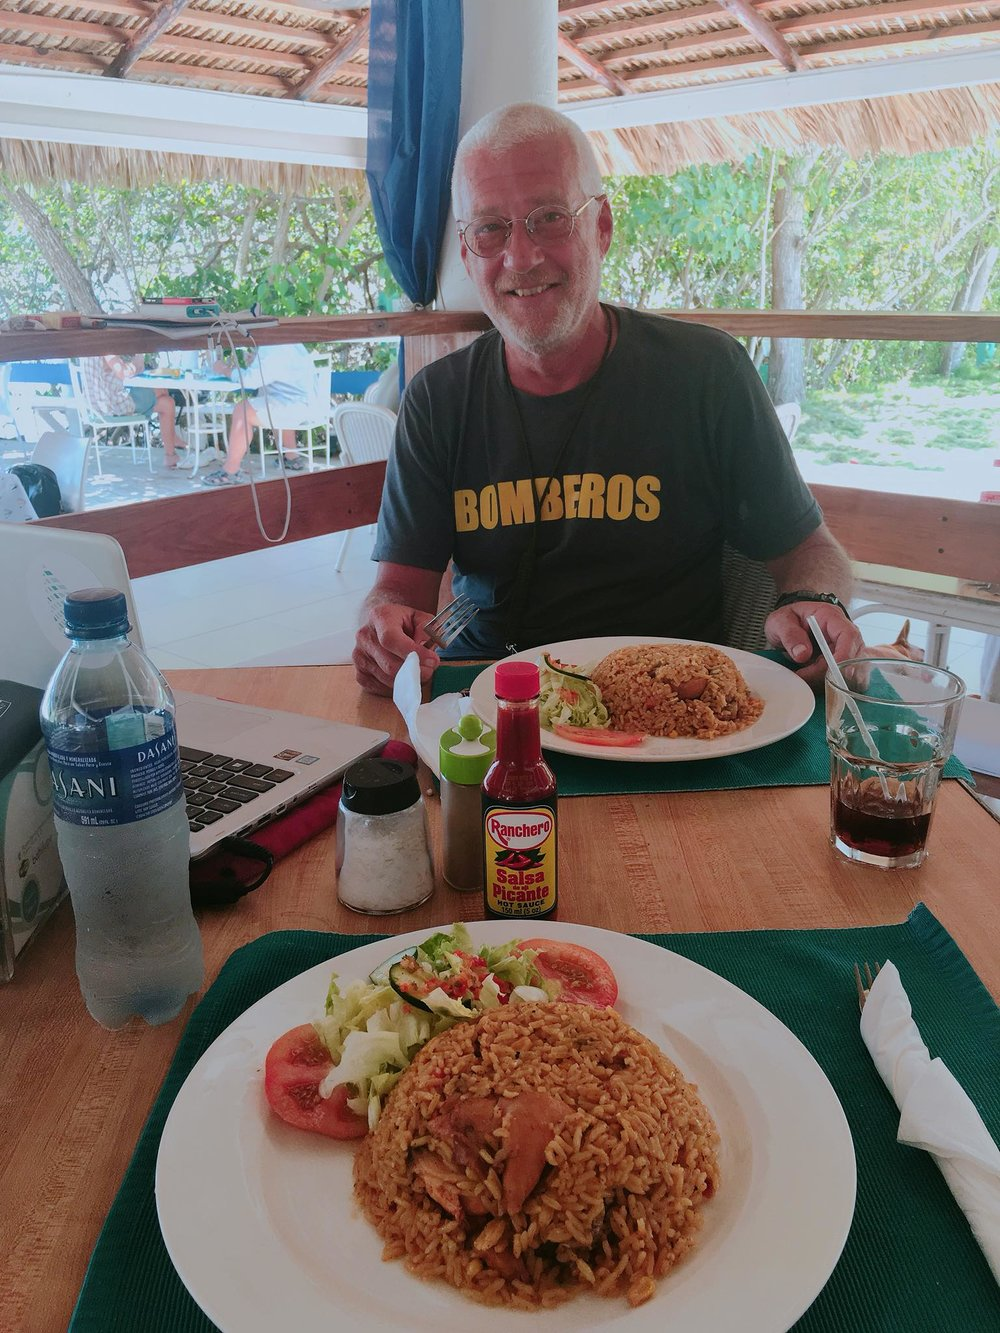 Sailing Life Day 52:  Another Work Day but at the Las Velas Restaurant, Puerto Blanco Marina